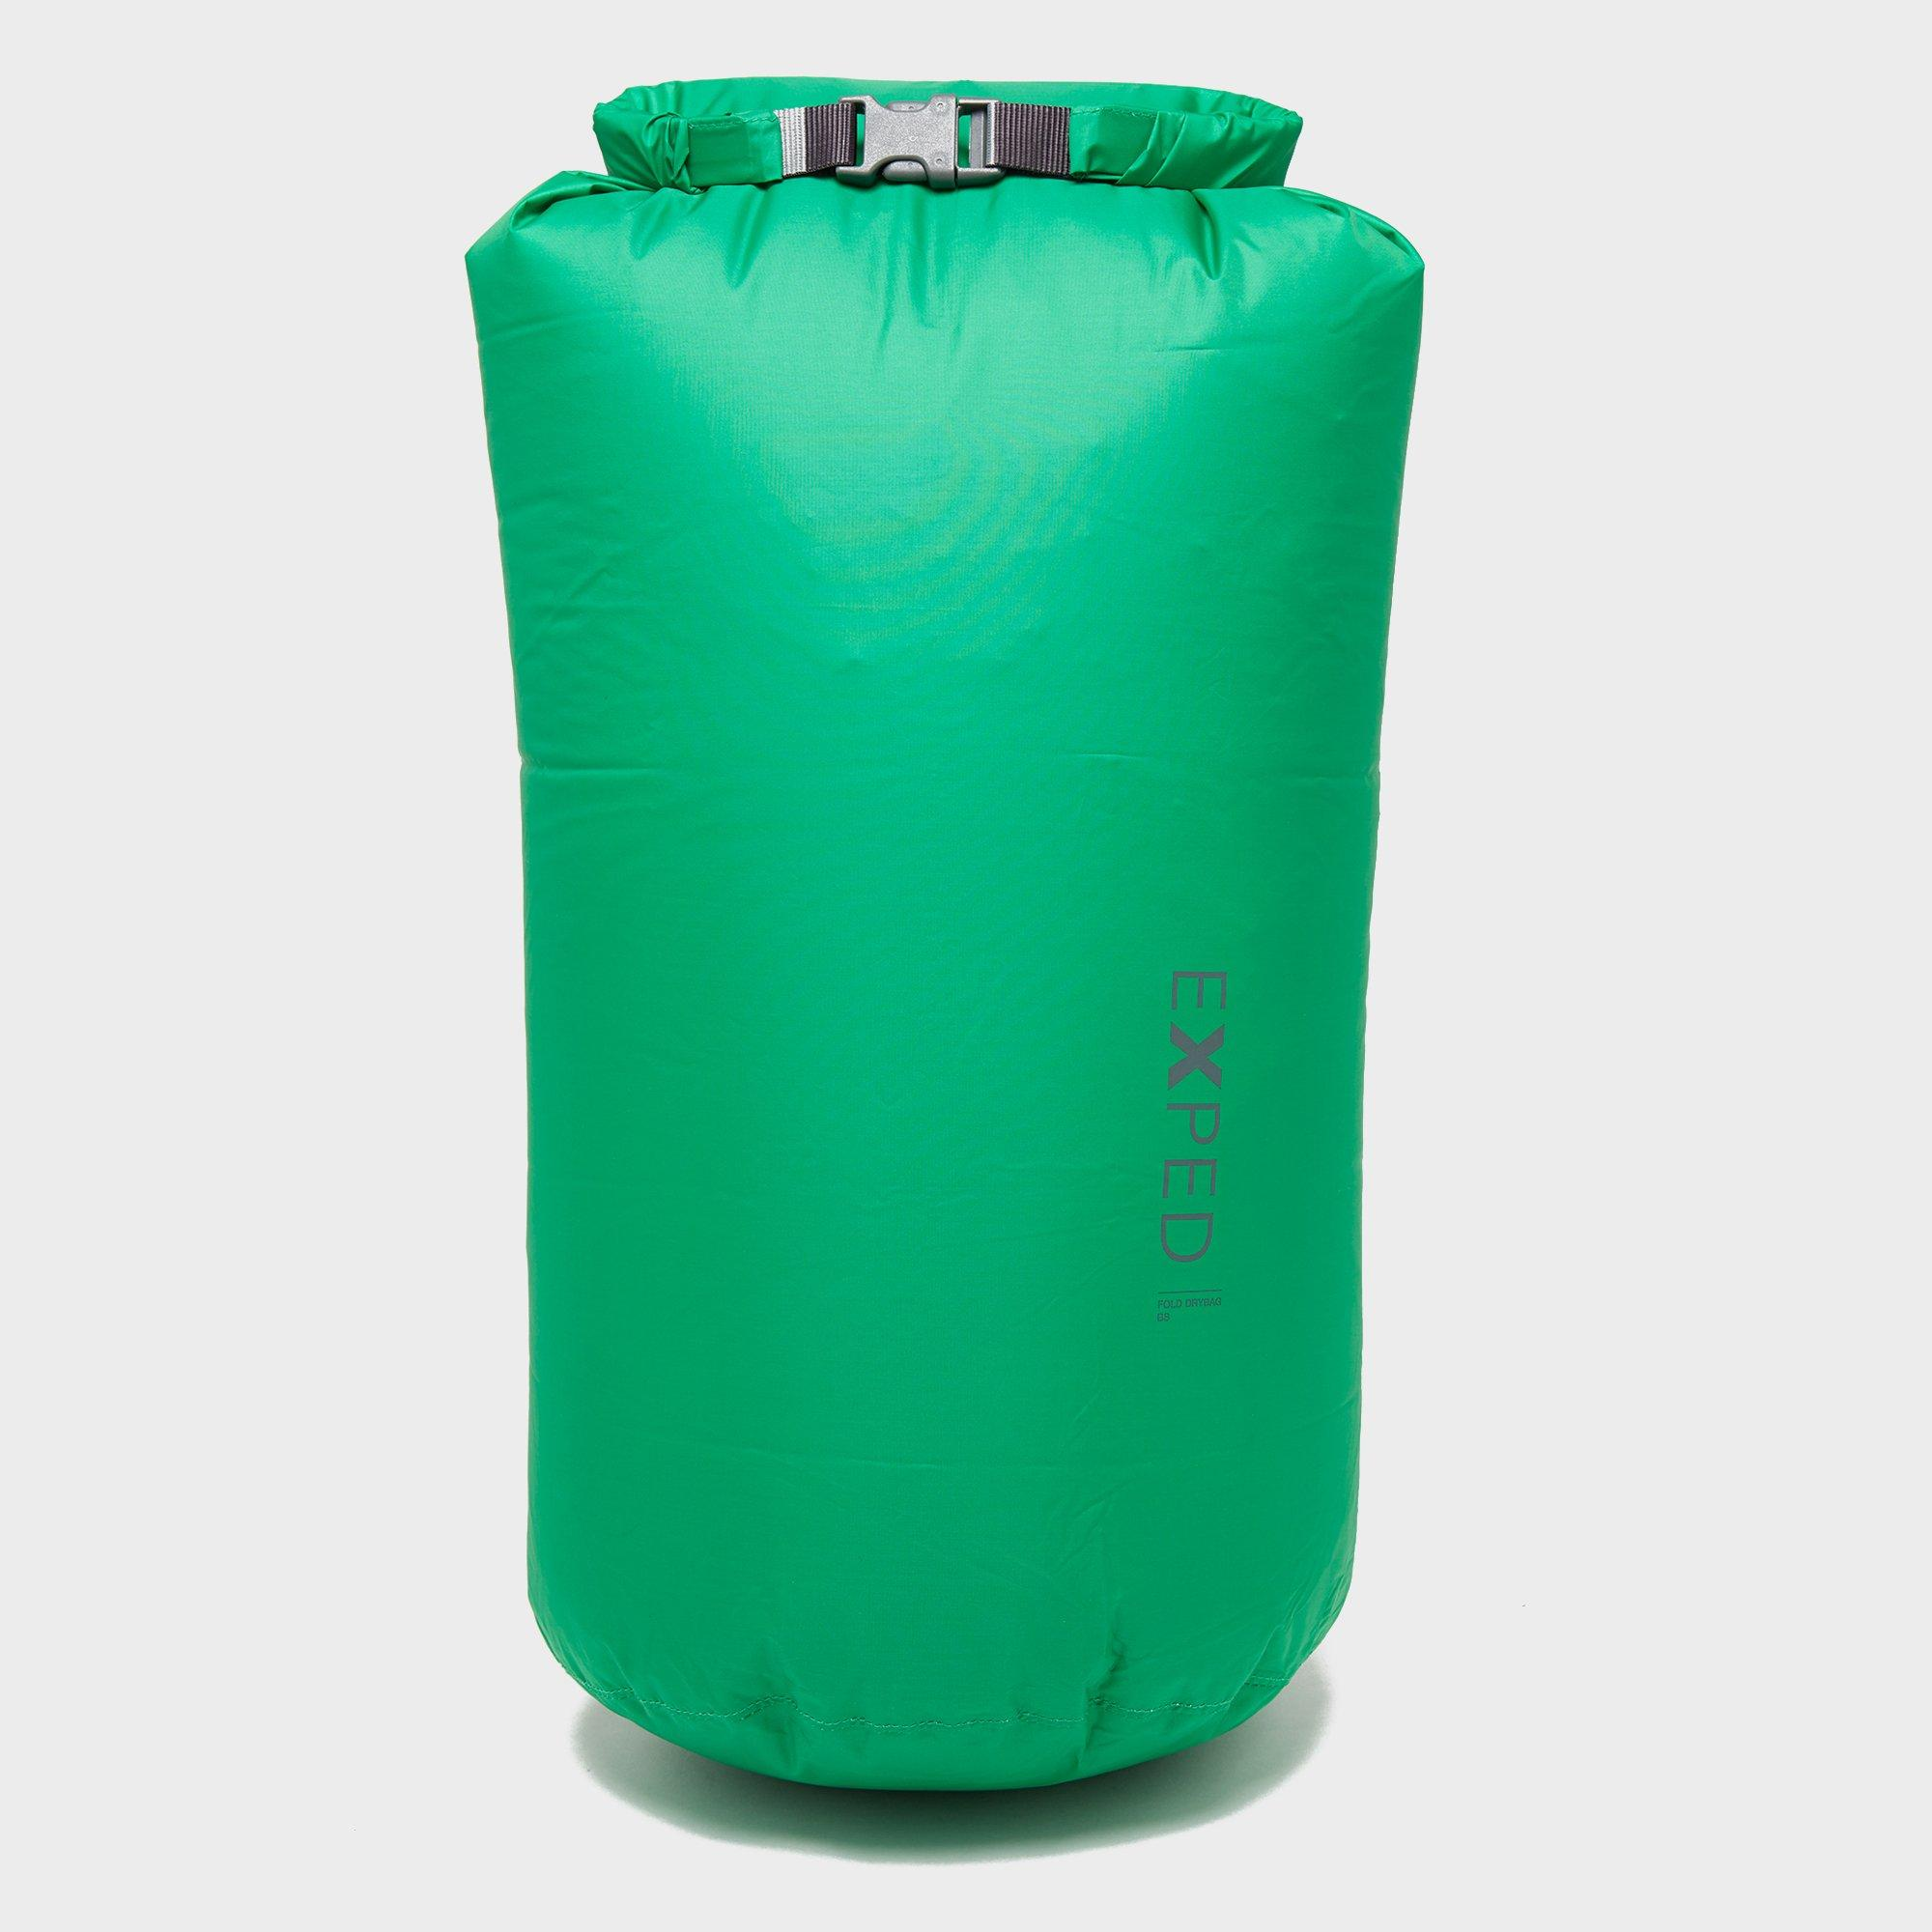 Exped Expedition 22L Dry Fold Bag - Green, Green